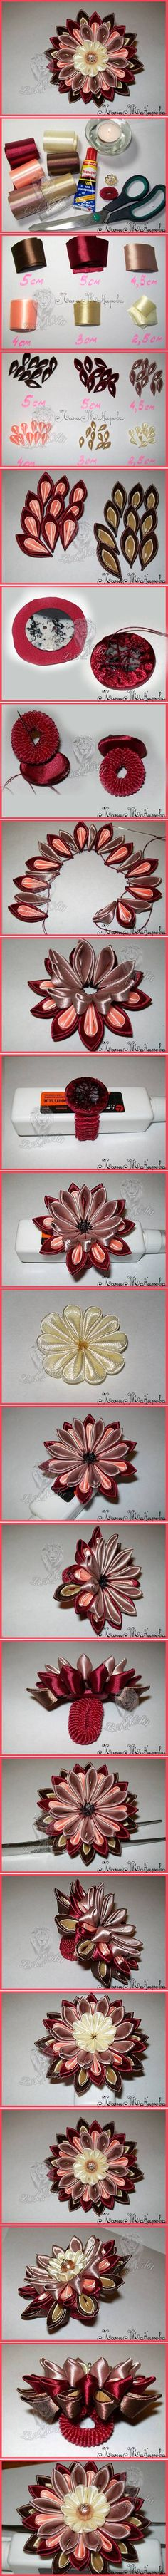 DIY Multi-Layer Ribbon Flower DIY Projects